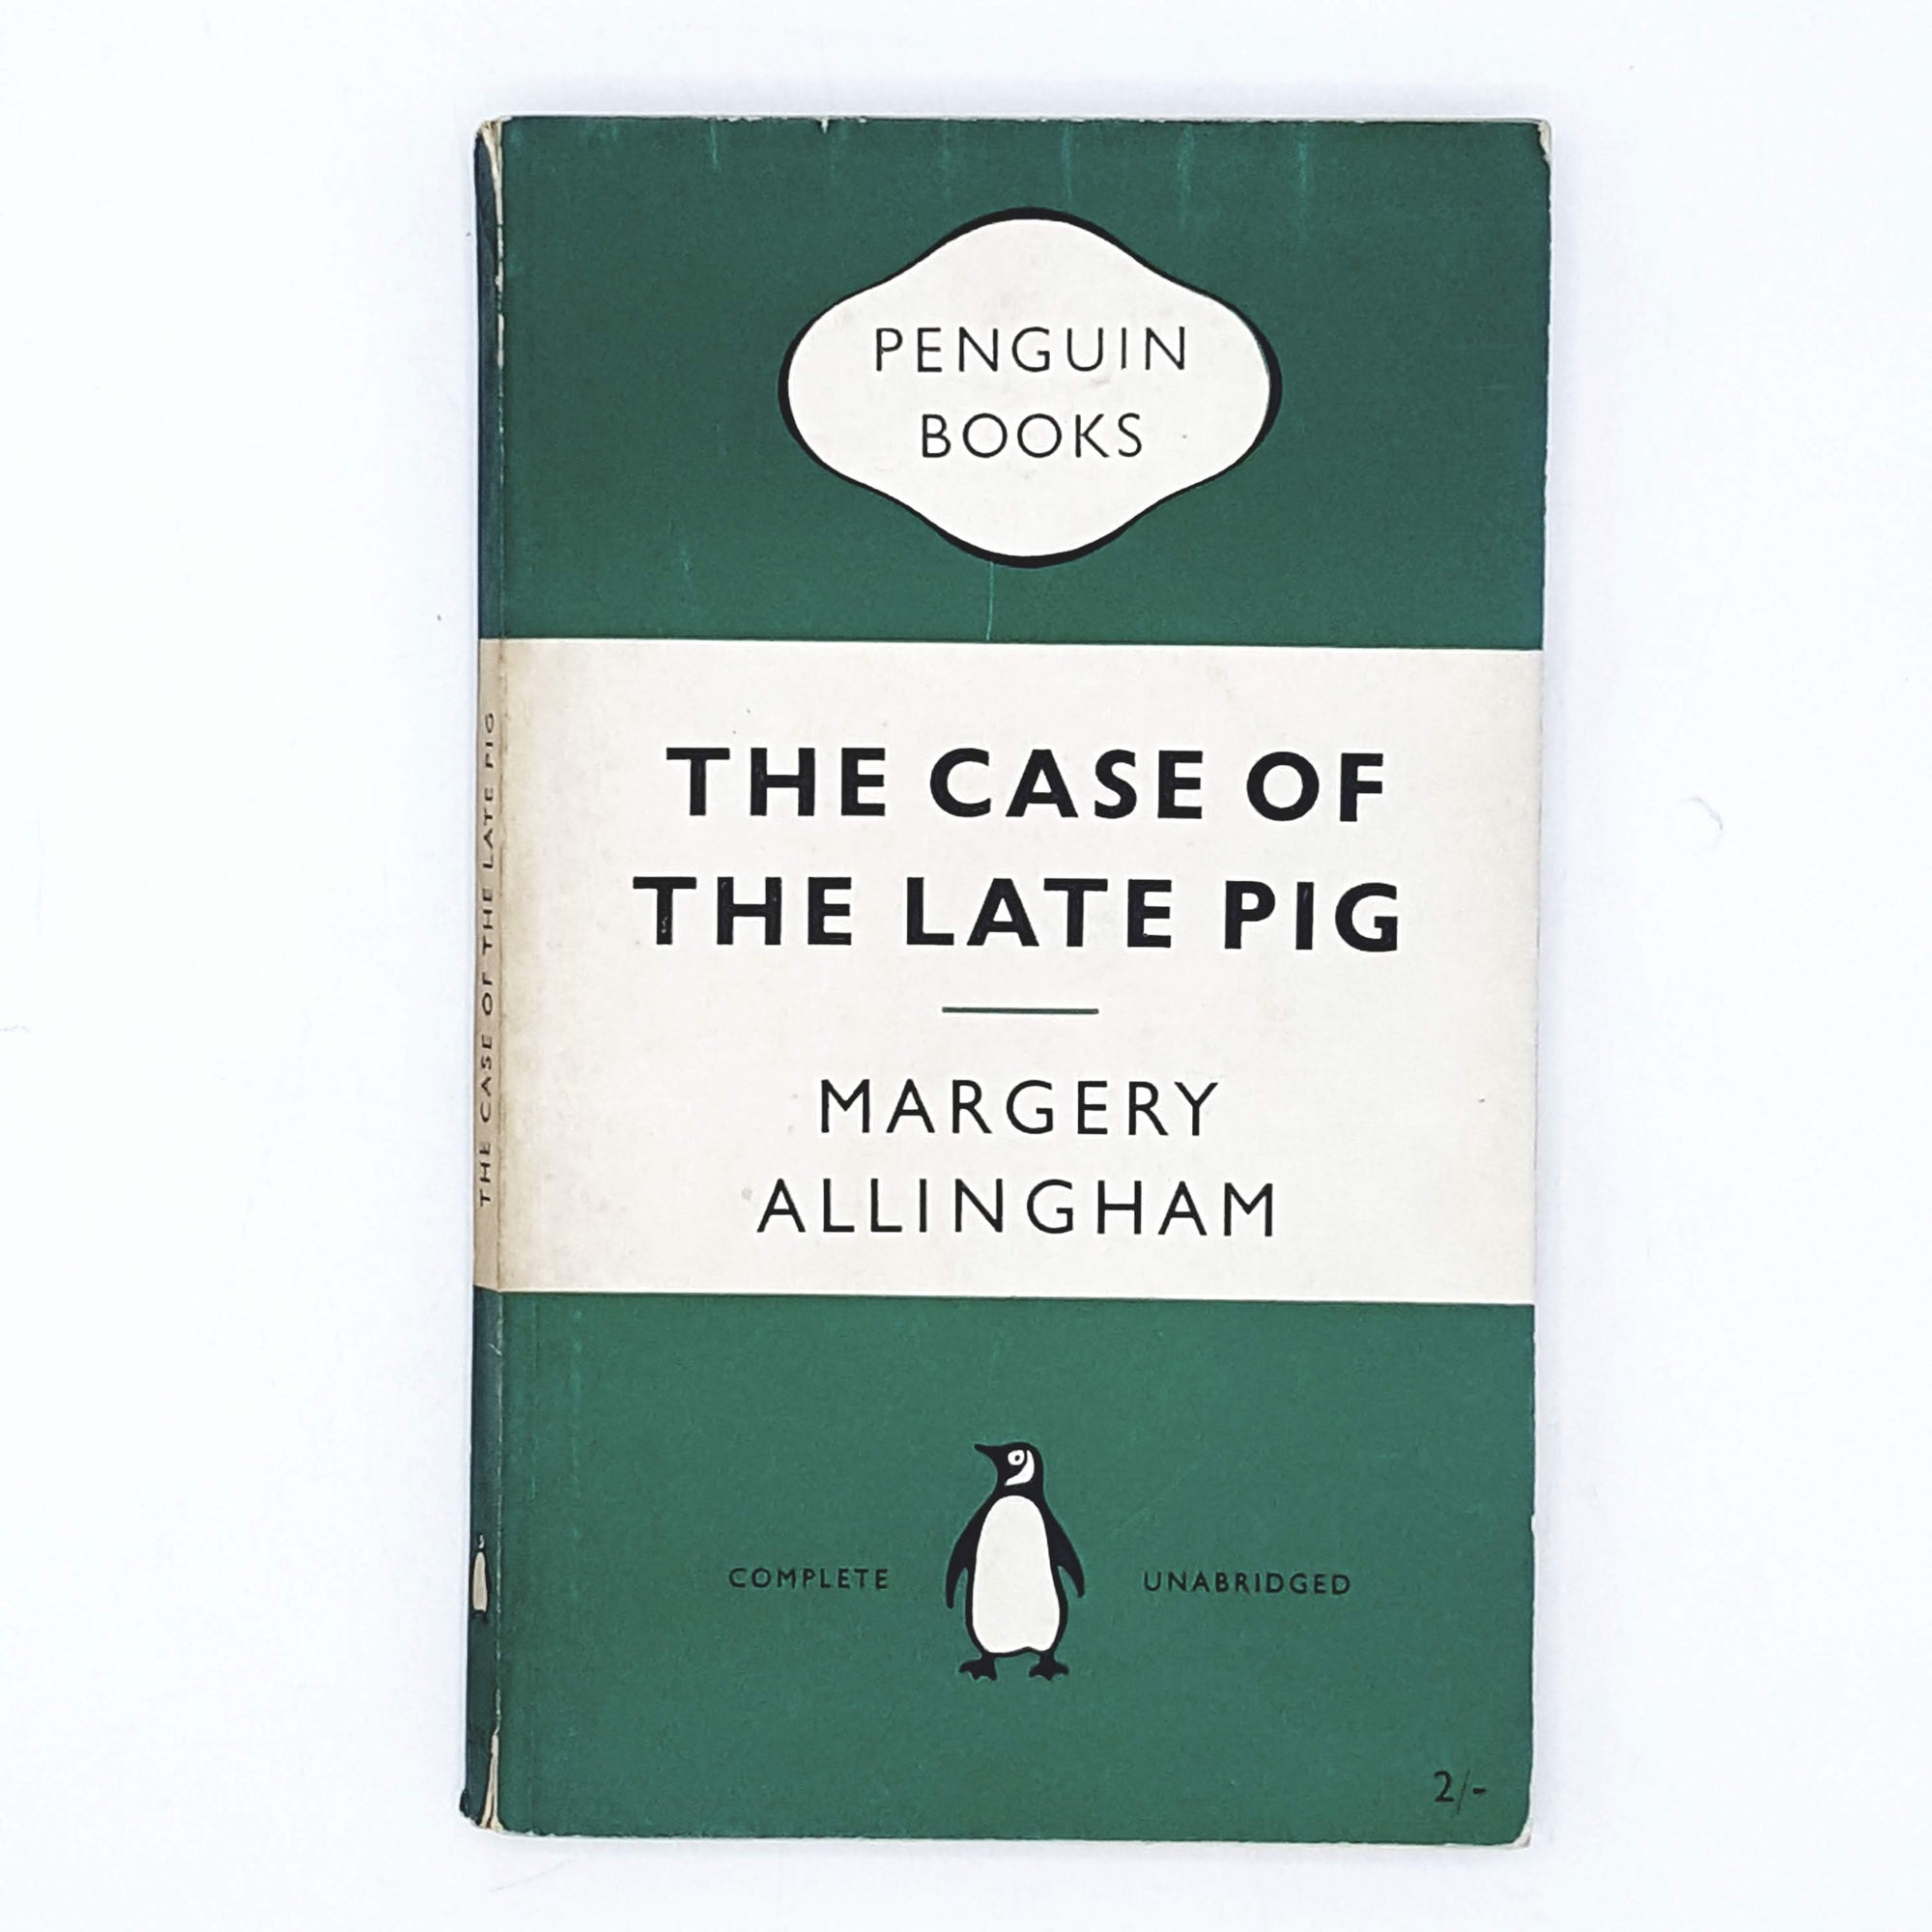 The Case of the Late Pig by Margery Allingham 1954